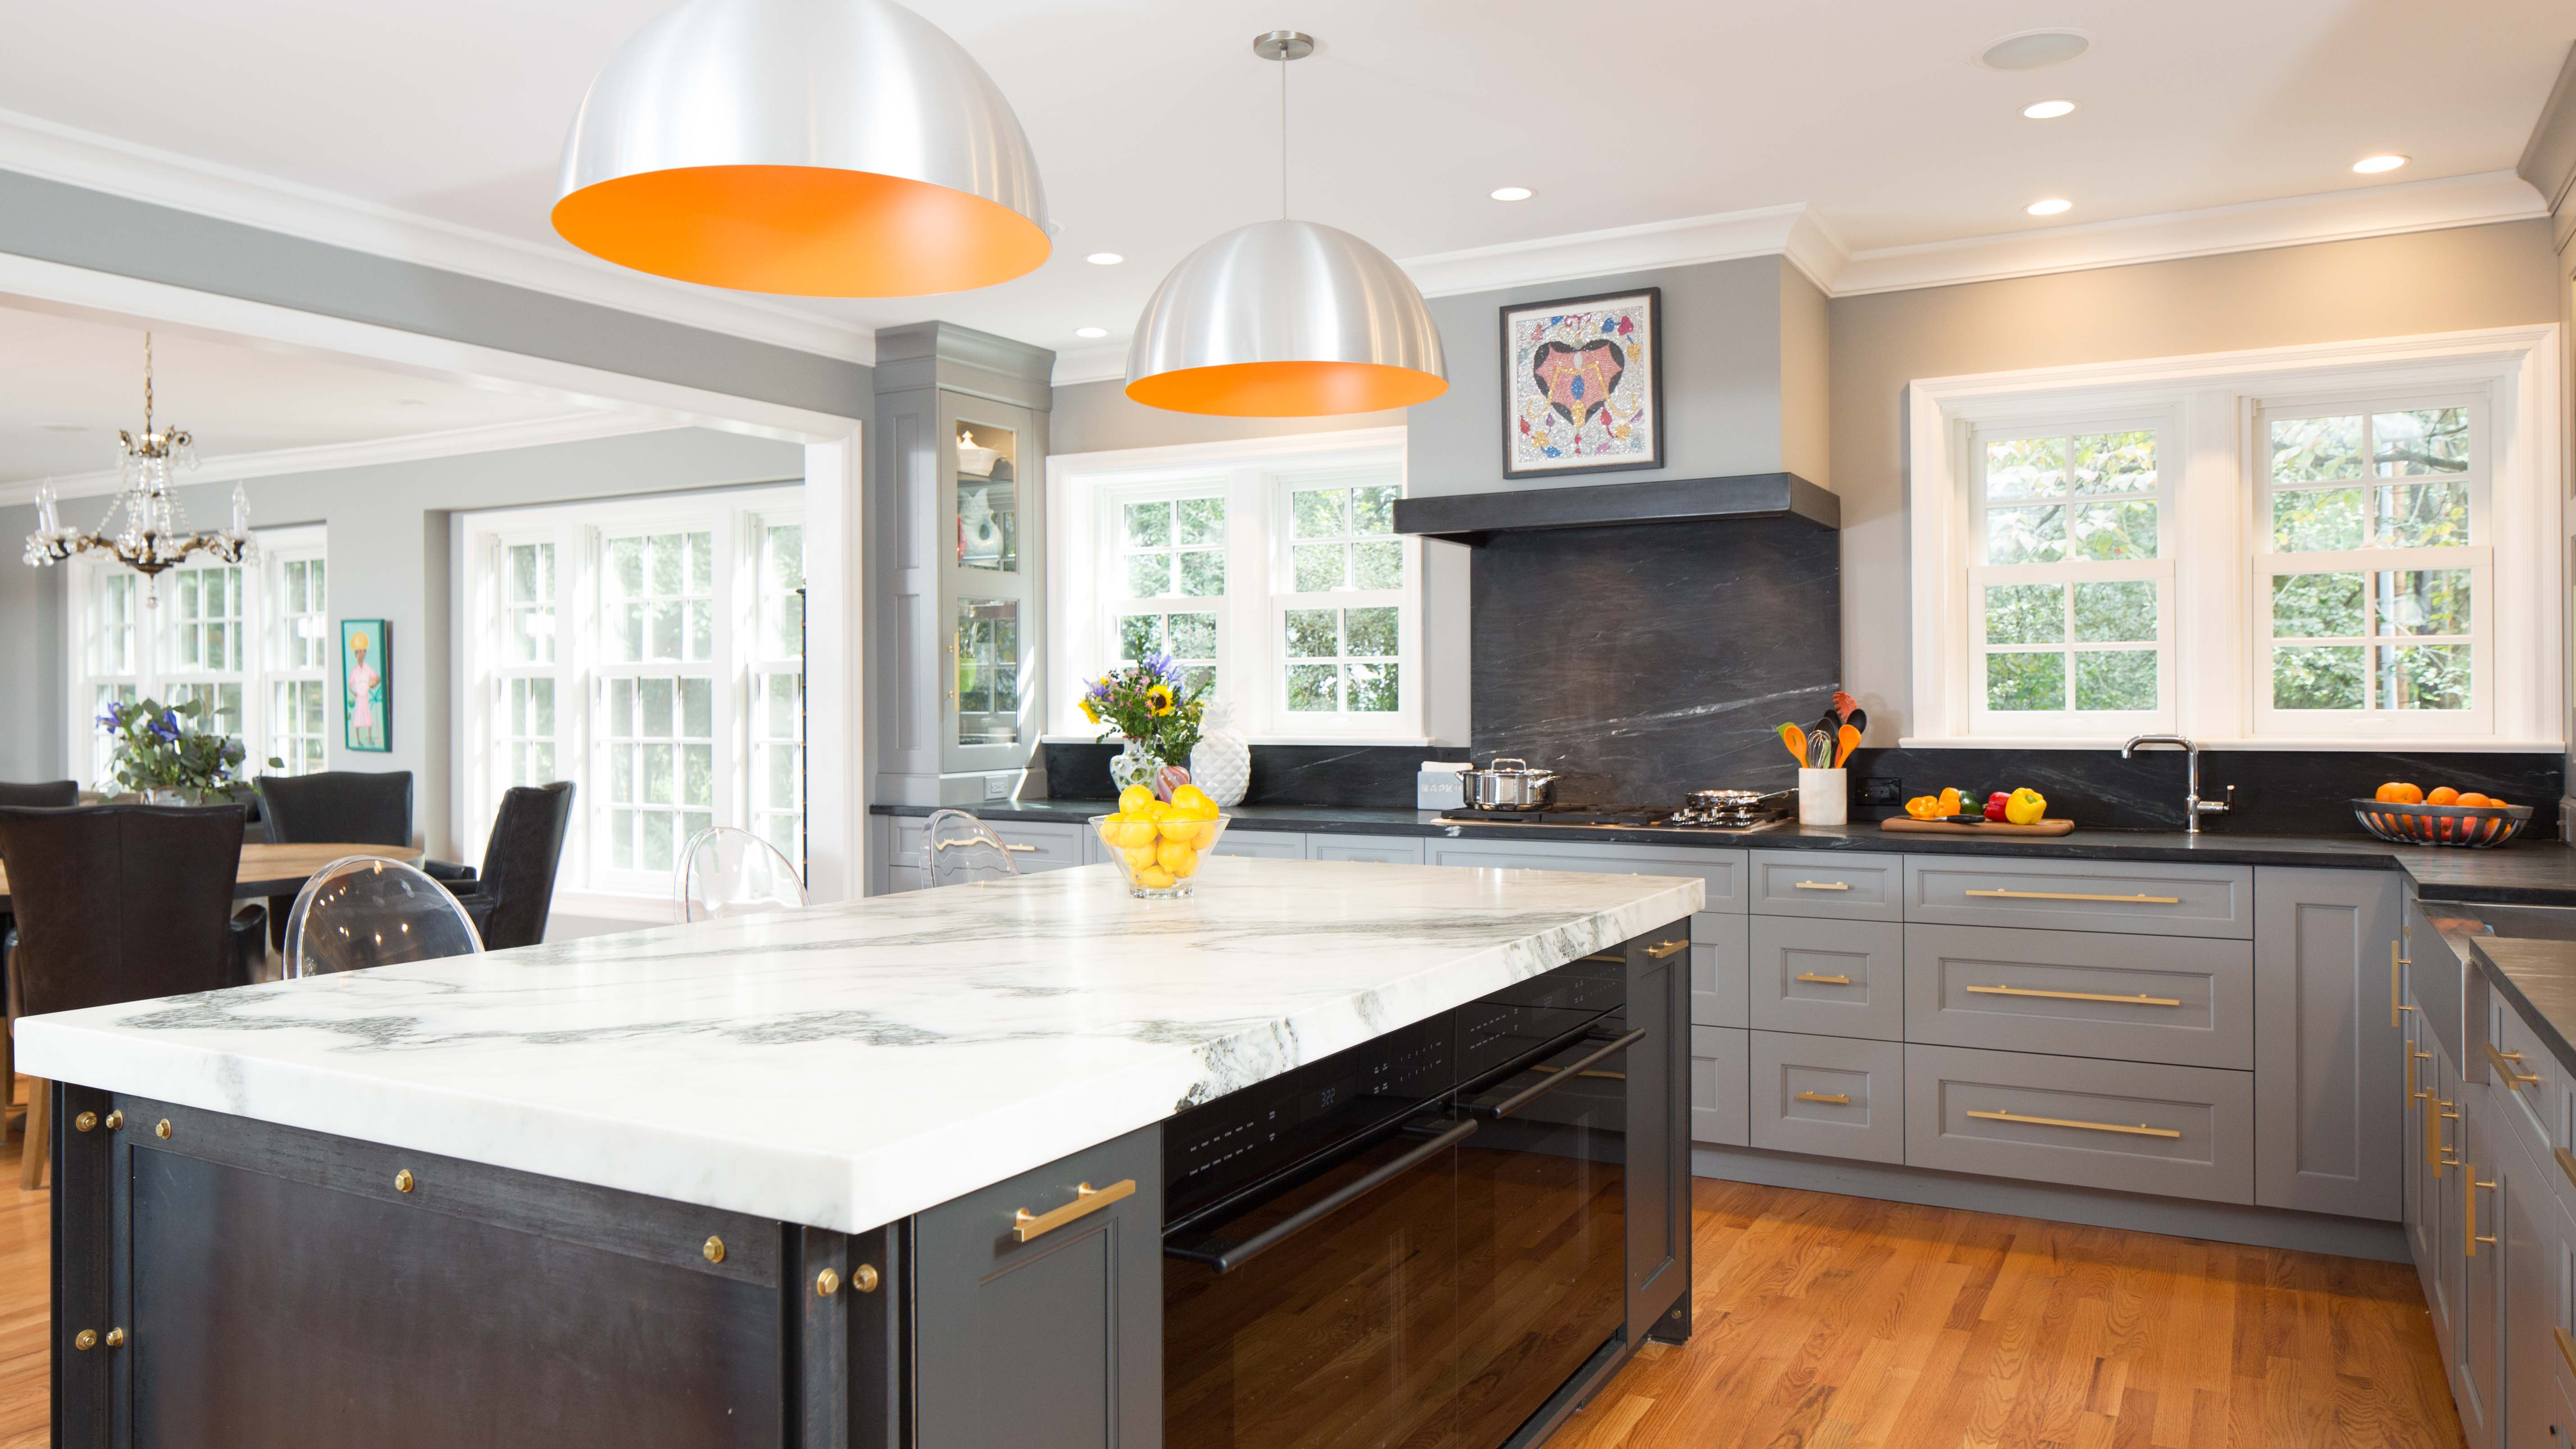 Kitchen of the Year 2016